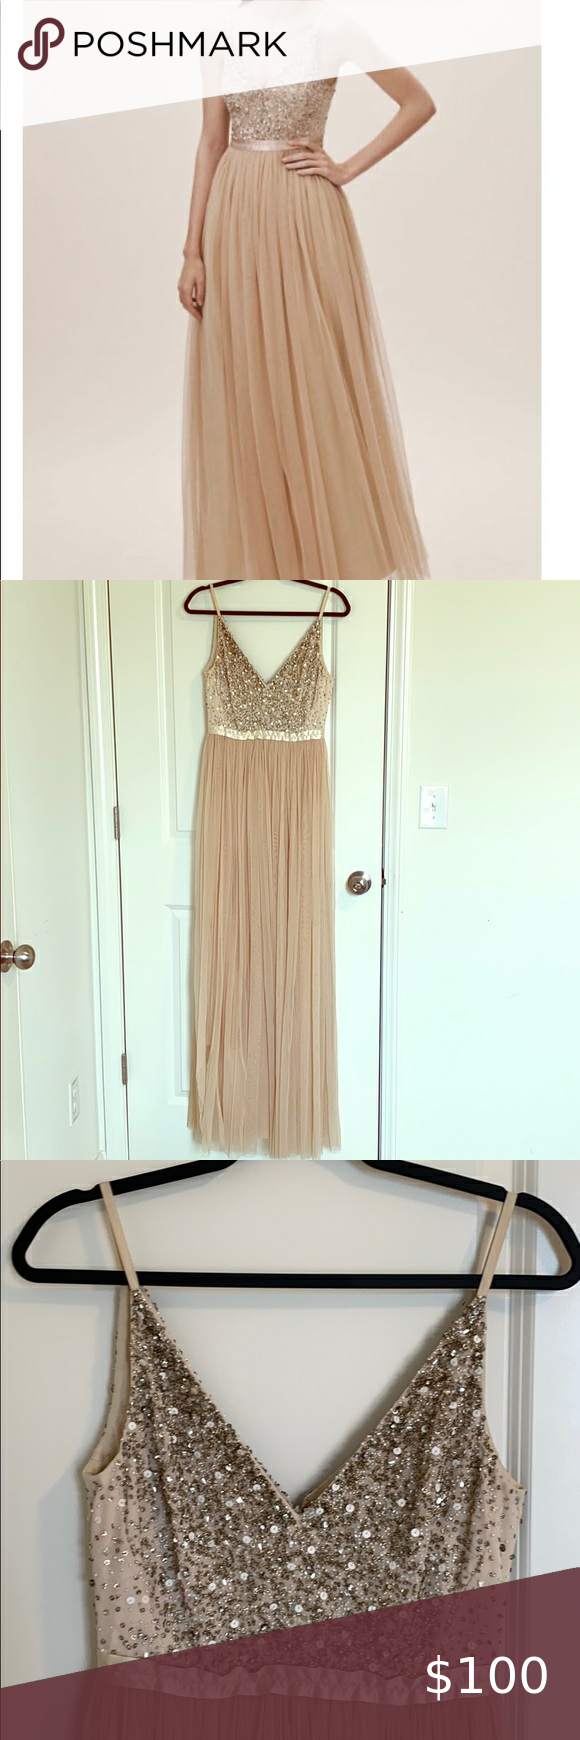 Photo of ANTHROPOLOGIE BHLDN AVERY DRESS Size 4 bridesmaids dress In like new condition E…